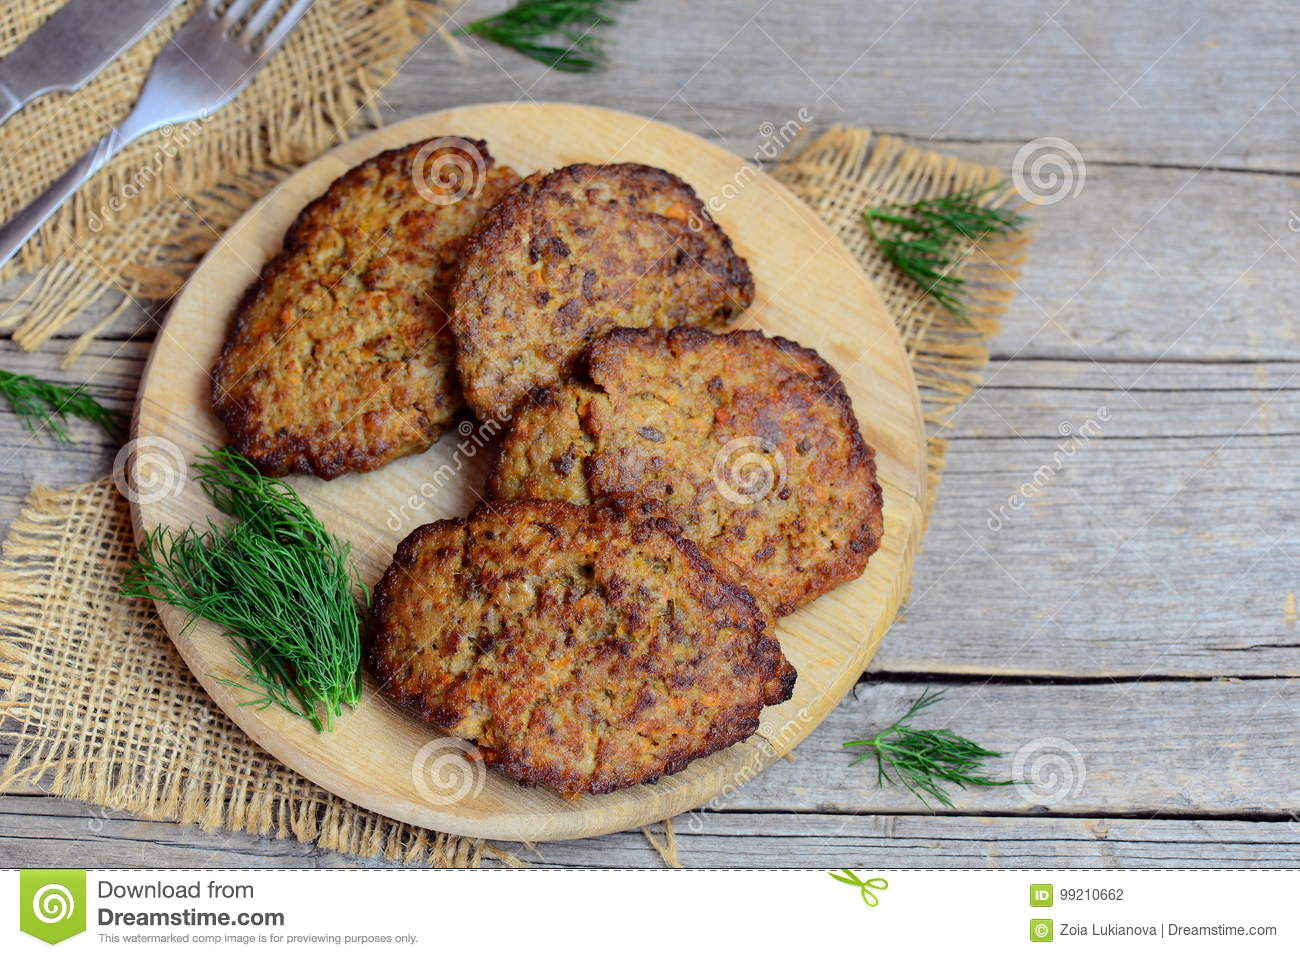 The most delicious hepatic pancakes: recipe for chicken liver